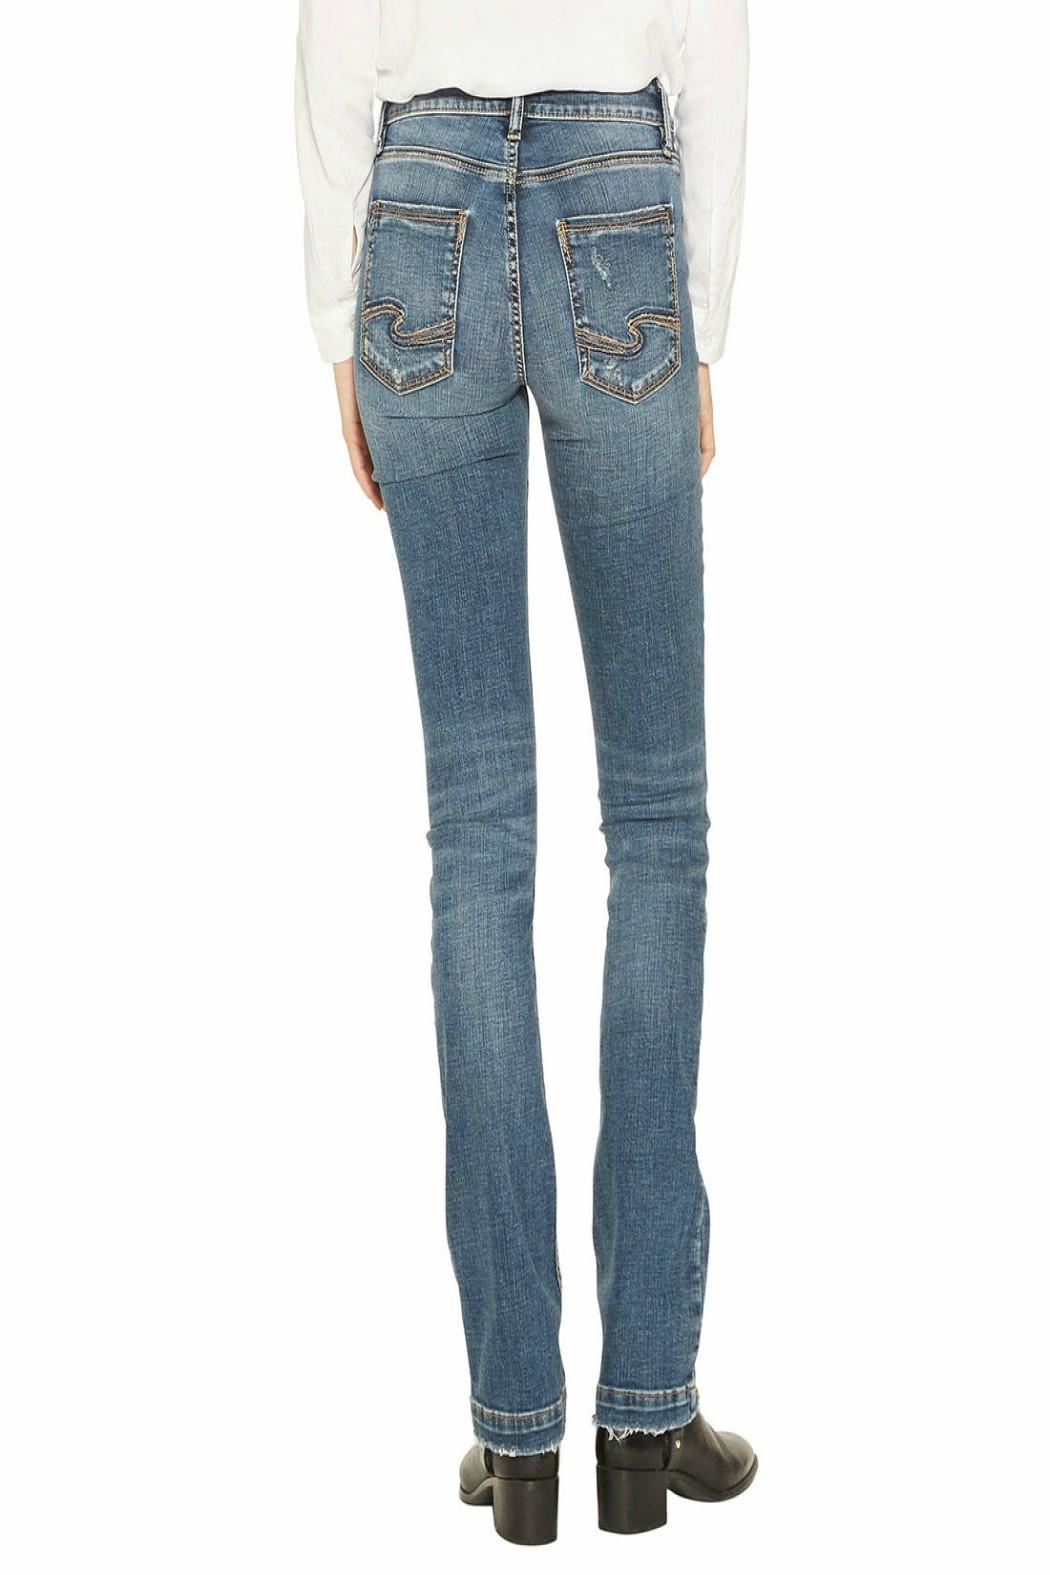 Silver Jeans Co. Slim-Boot Elyse Jeans - Front Full Image